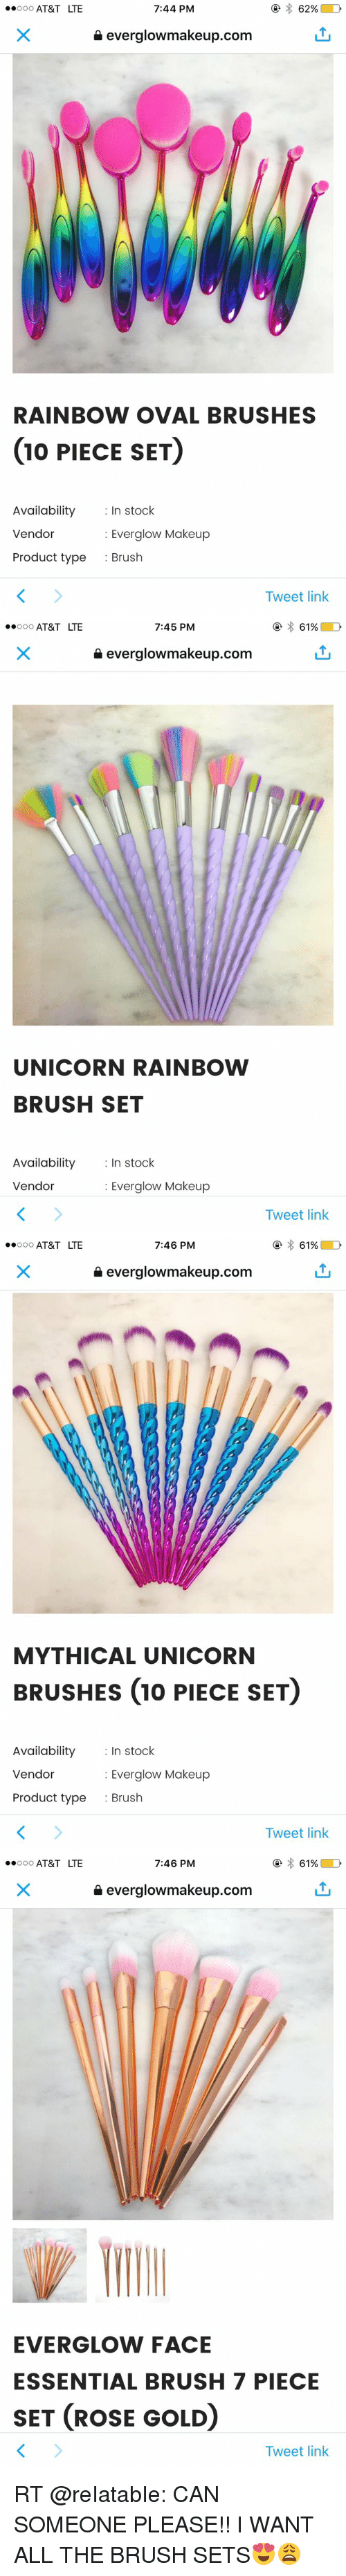 Unicorn Rainbow: 62%  D  Ooo AT&T LTE  7:44 PM  everglowmakeup.com  RAINBOW OVAL BRUSHES  (10 PIECE SET)  Availability  In stock  Vendor  Everglow Makeup  Product type  Brush  Tweet link   Ooo AT&T LTE  7:45 PM  61%  everglowmakeup.com  UNICORN RAINBOW  BRUSH SET  Availability  In stock  Vendor  Everglow Makeup  Tweet link   Ooo AT&T LTE  7:46 PM  61%  everglowmakeup.com  MYTHICAL UNICORN  BRUSHES (10 PIECE SET)  Availability In stock  Vendor  Everglow Makeup  Product type  Brush  Tweet link   Ooo AT&T LTE  7:46 PM  61%  everglowmakeup.com  EVER GLOW FACE  ESSENTIAL BRUSH 7 PIECE  SET (ROSE GOLD  Tweet link RT @reIatabIe: CAN SOMEONE PLEASE!! I WANT ALL THE BRUSH SETS😍😩